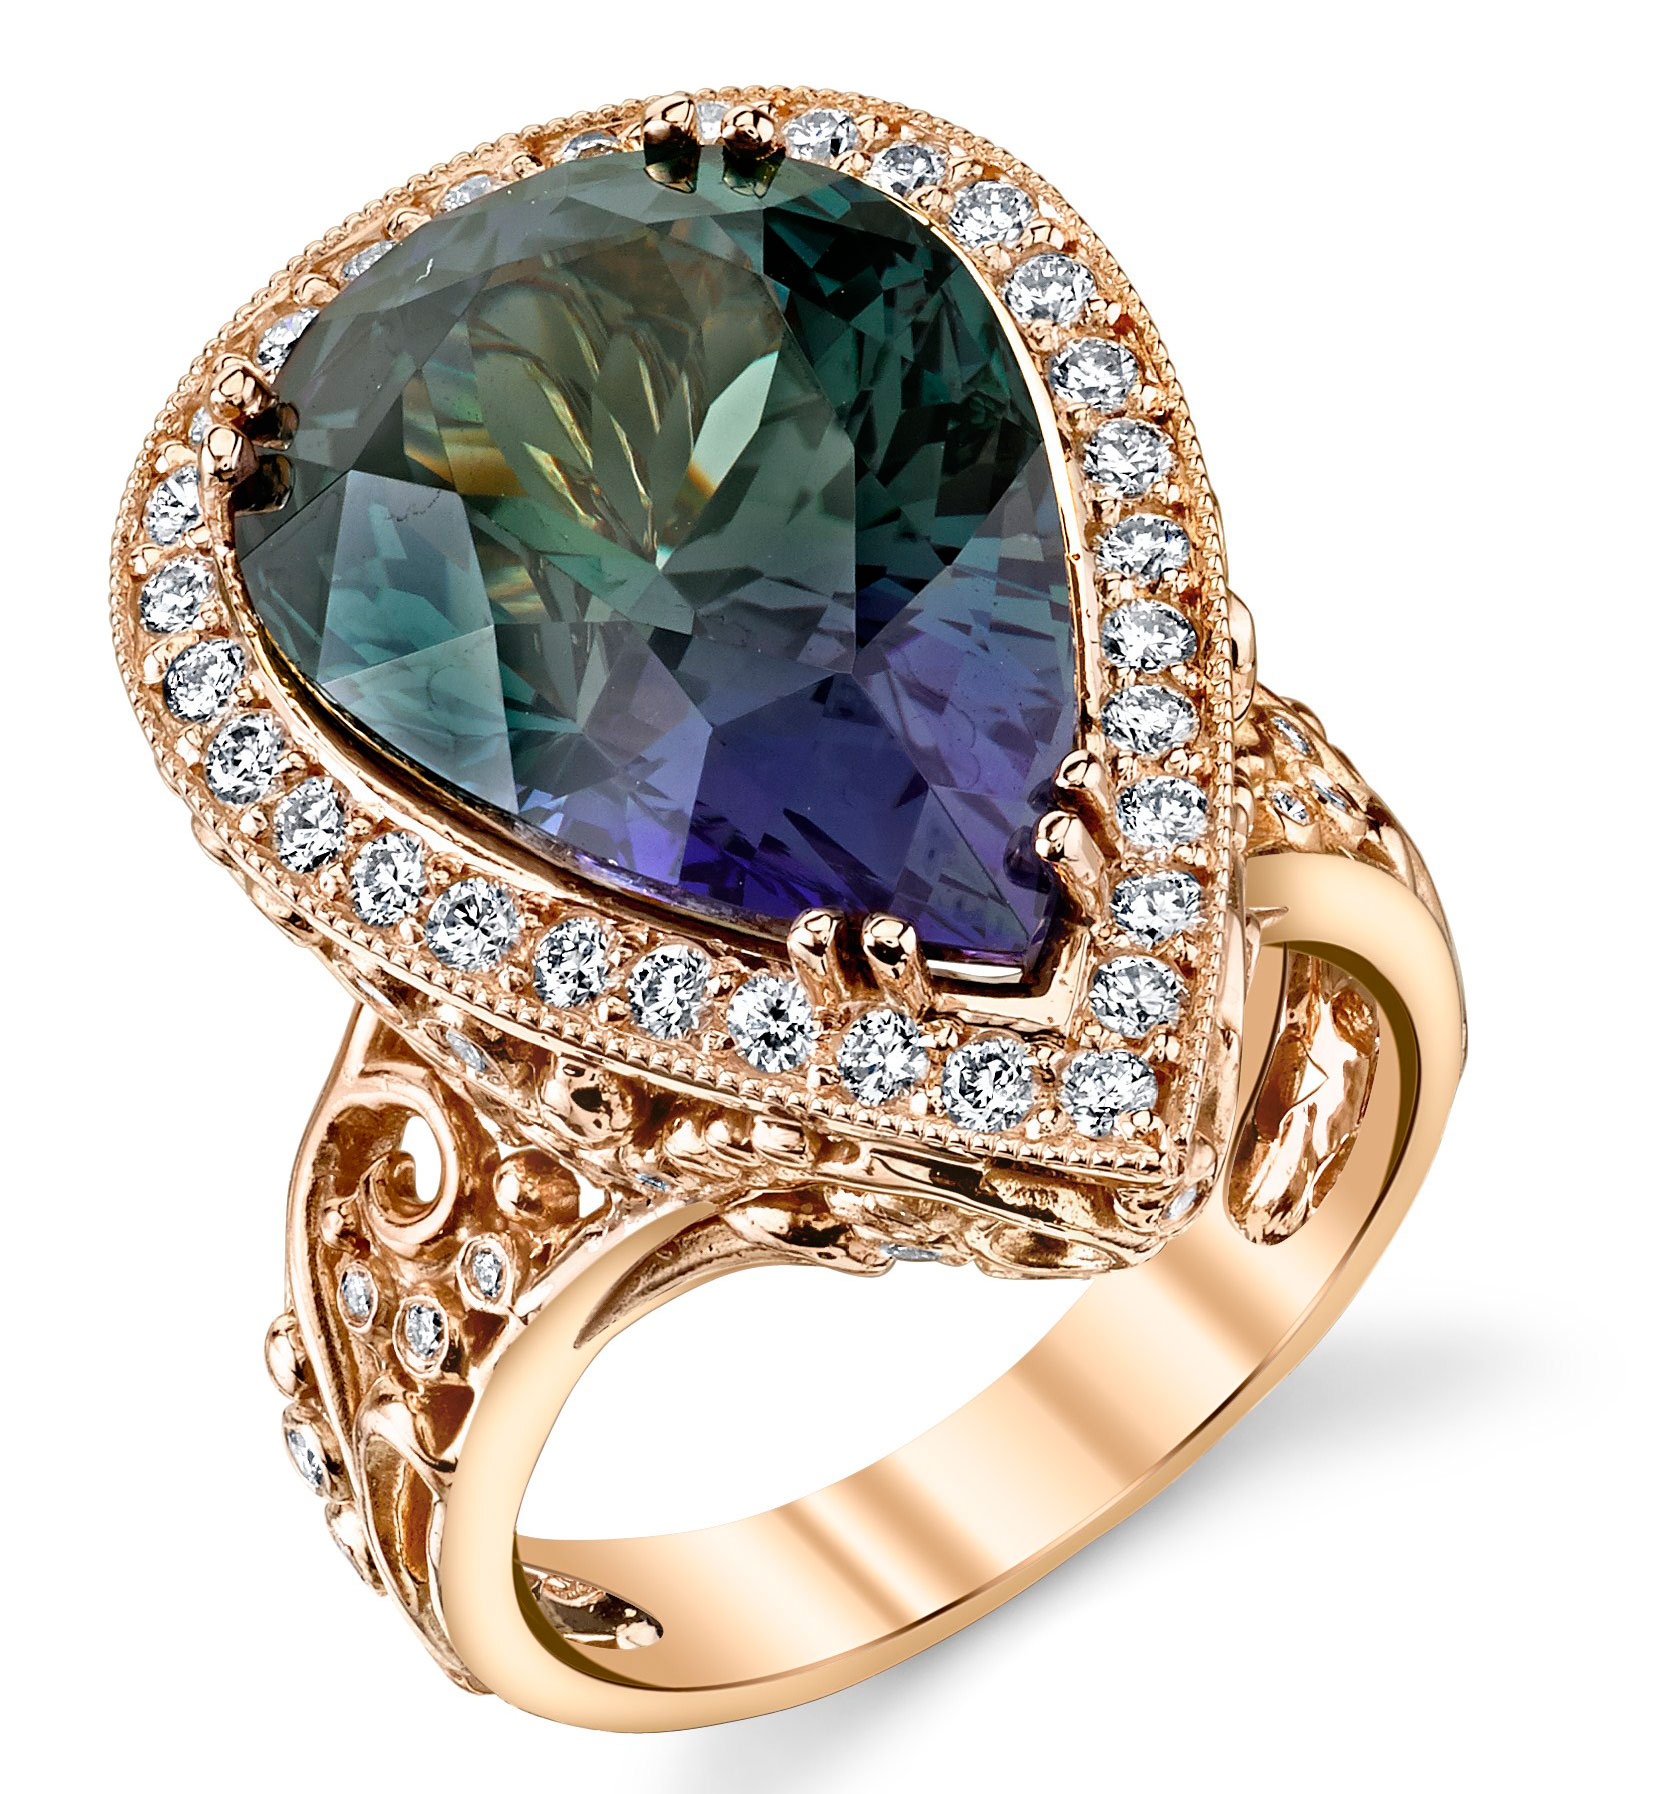 Dallas Prince Designs Twilight tanzanite ring | JCK On Your Market